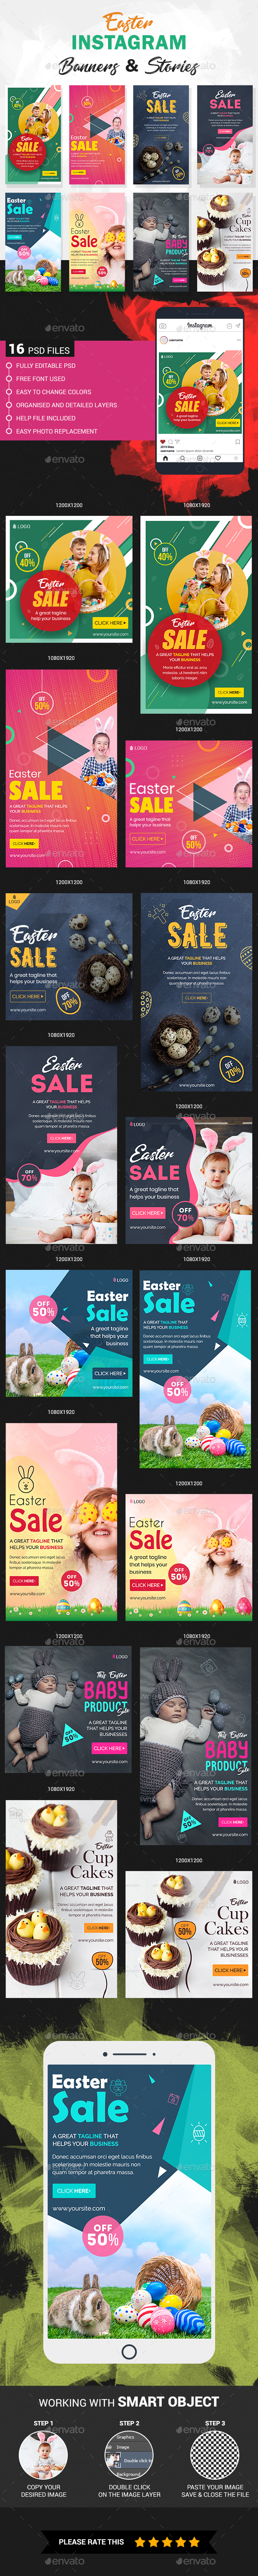 Easter Instagram Story and Banner Templates